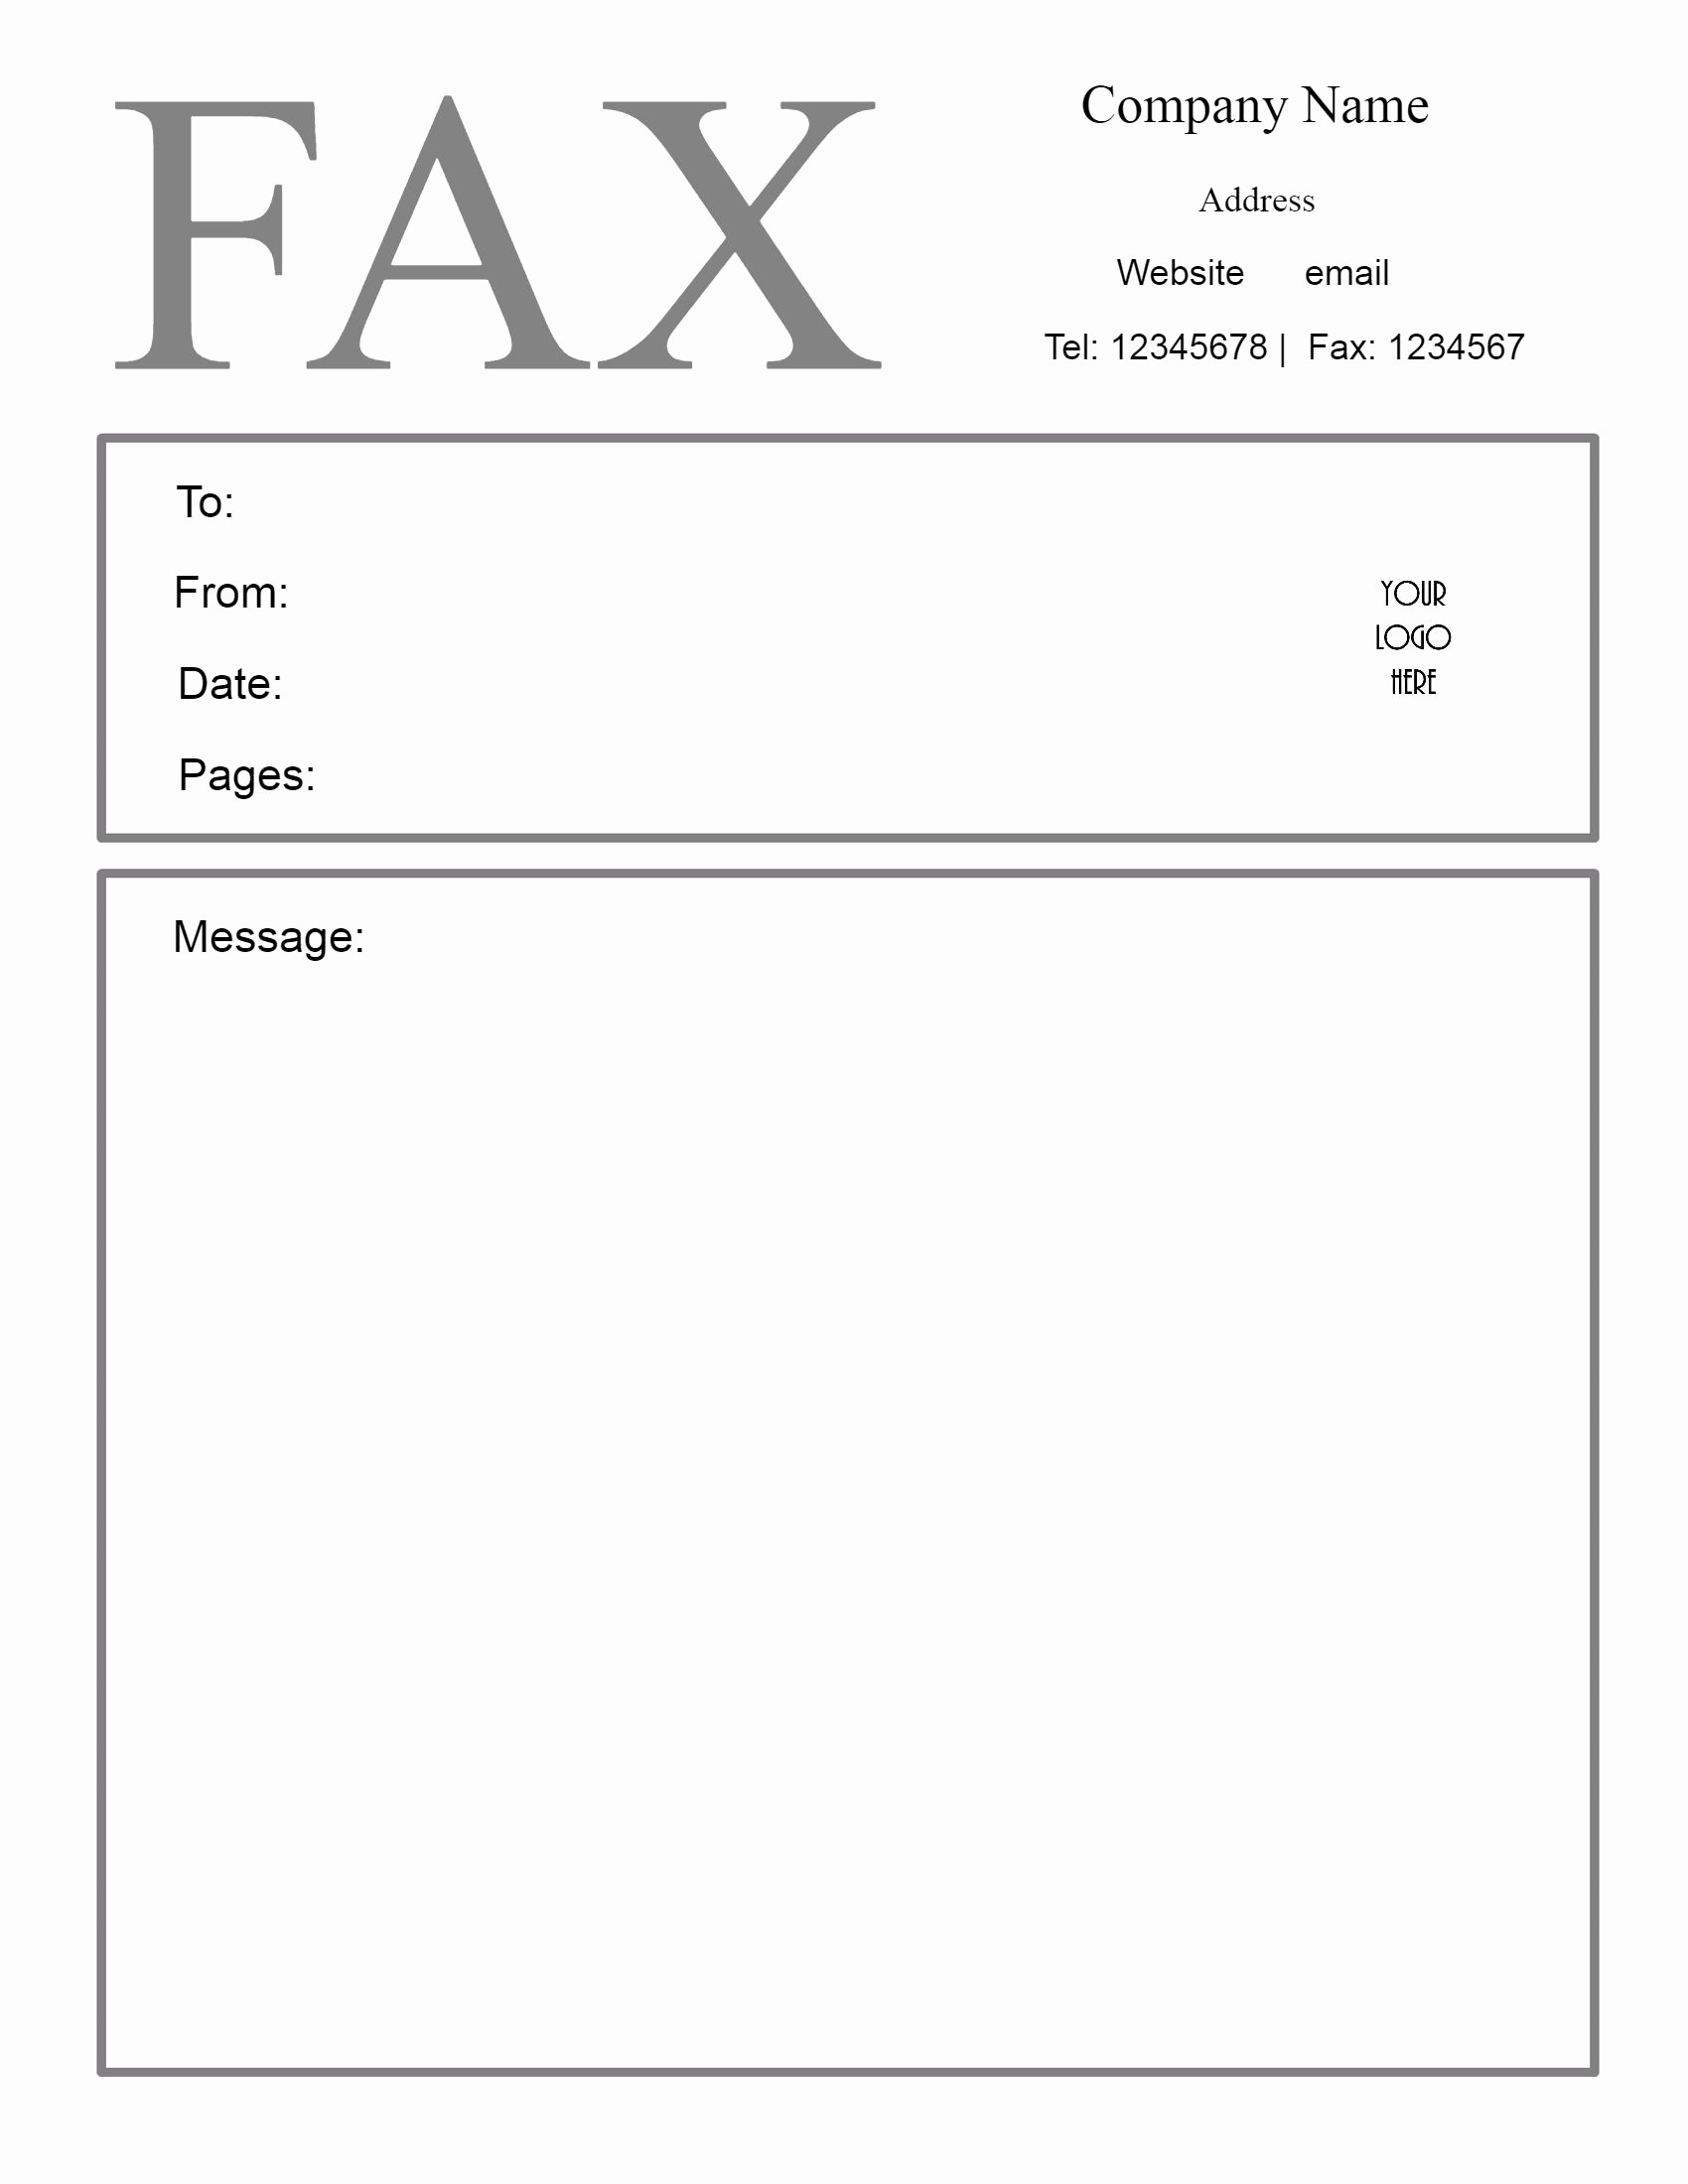 Printable Fax Cover Sheets Pdf Luxury Free Fax Cover Sheet Template